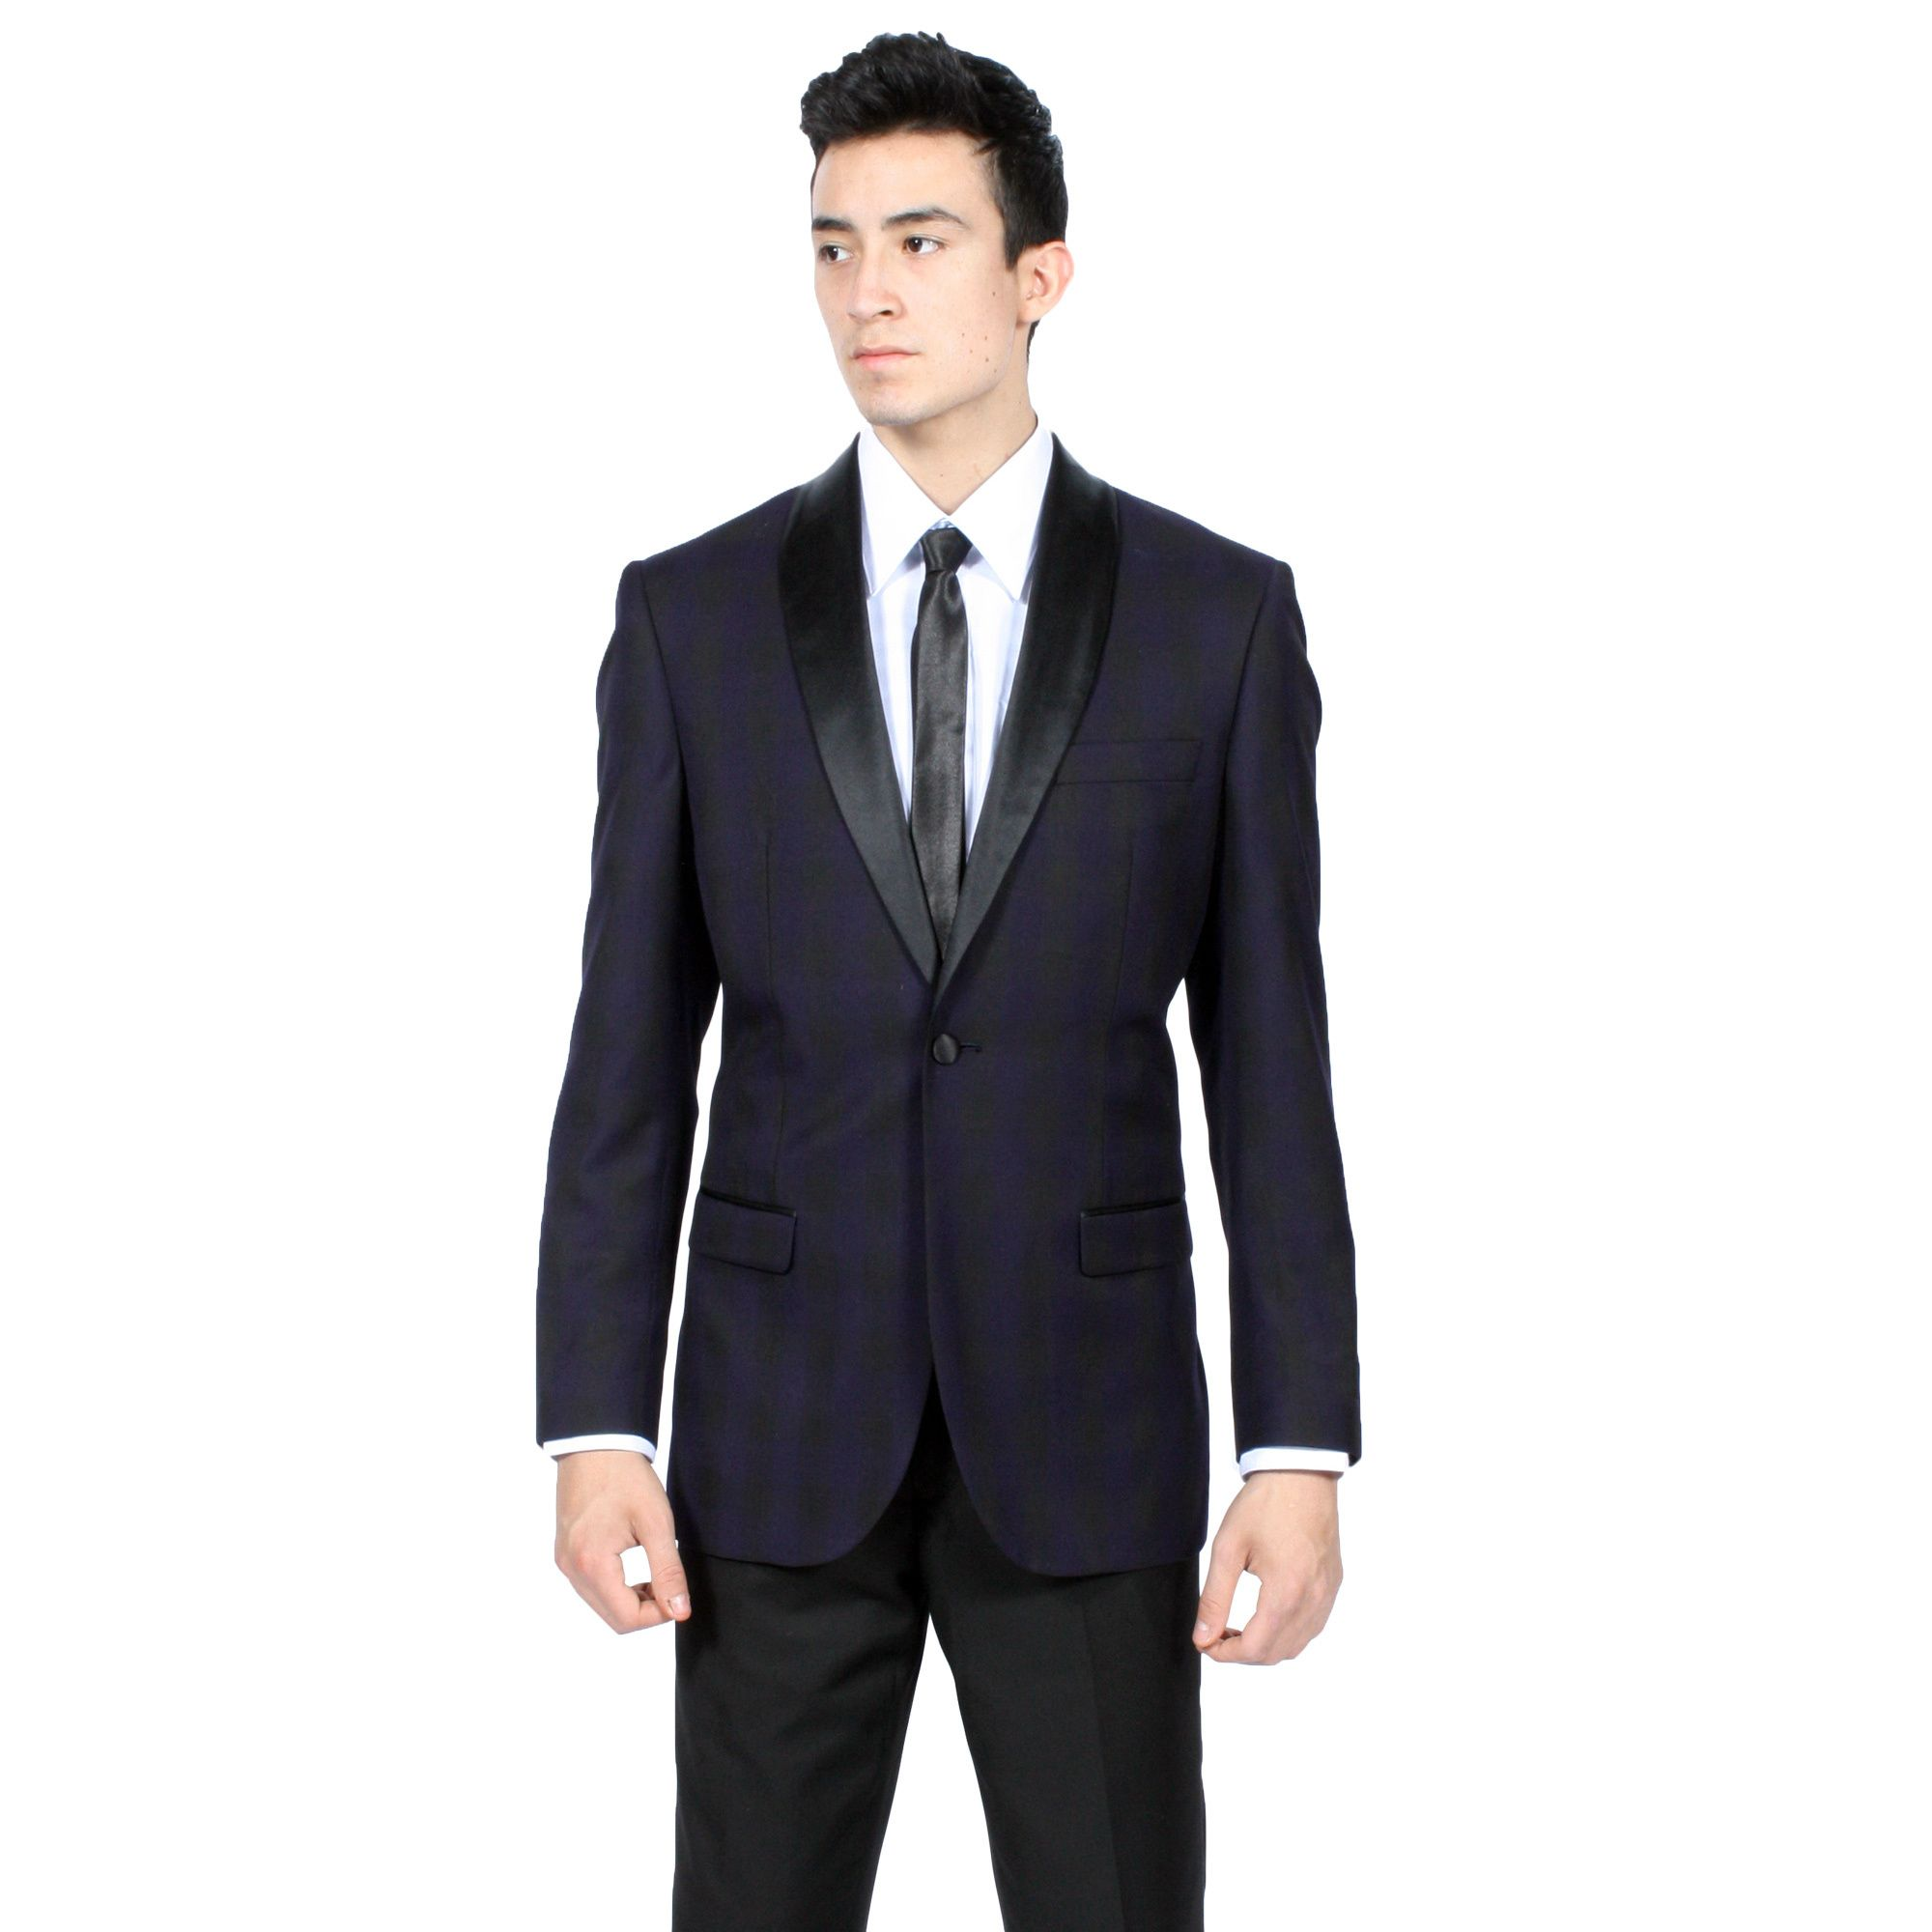 This slim fitting blazer is fashioned from polyester and viscose with a single-button closure. Zonettie finishes this tuxedo jacket with a contrasting satin shawl collar.